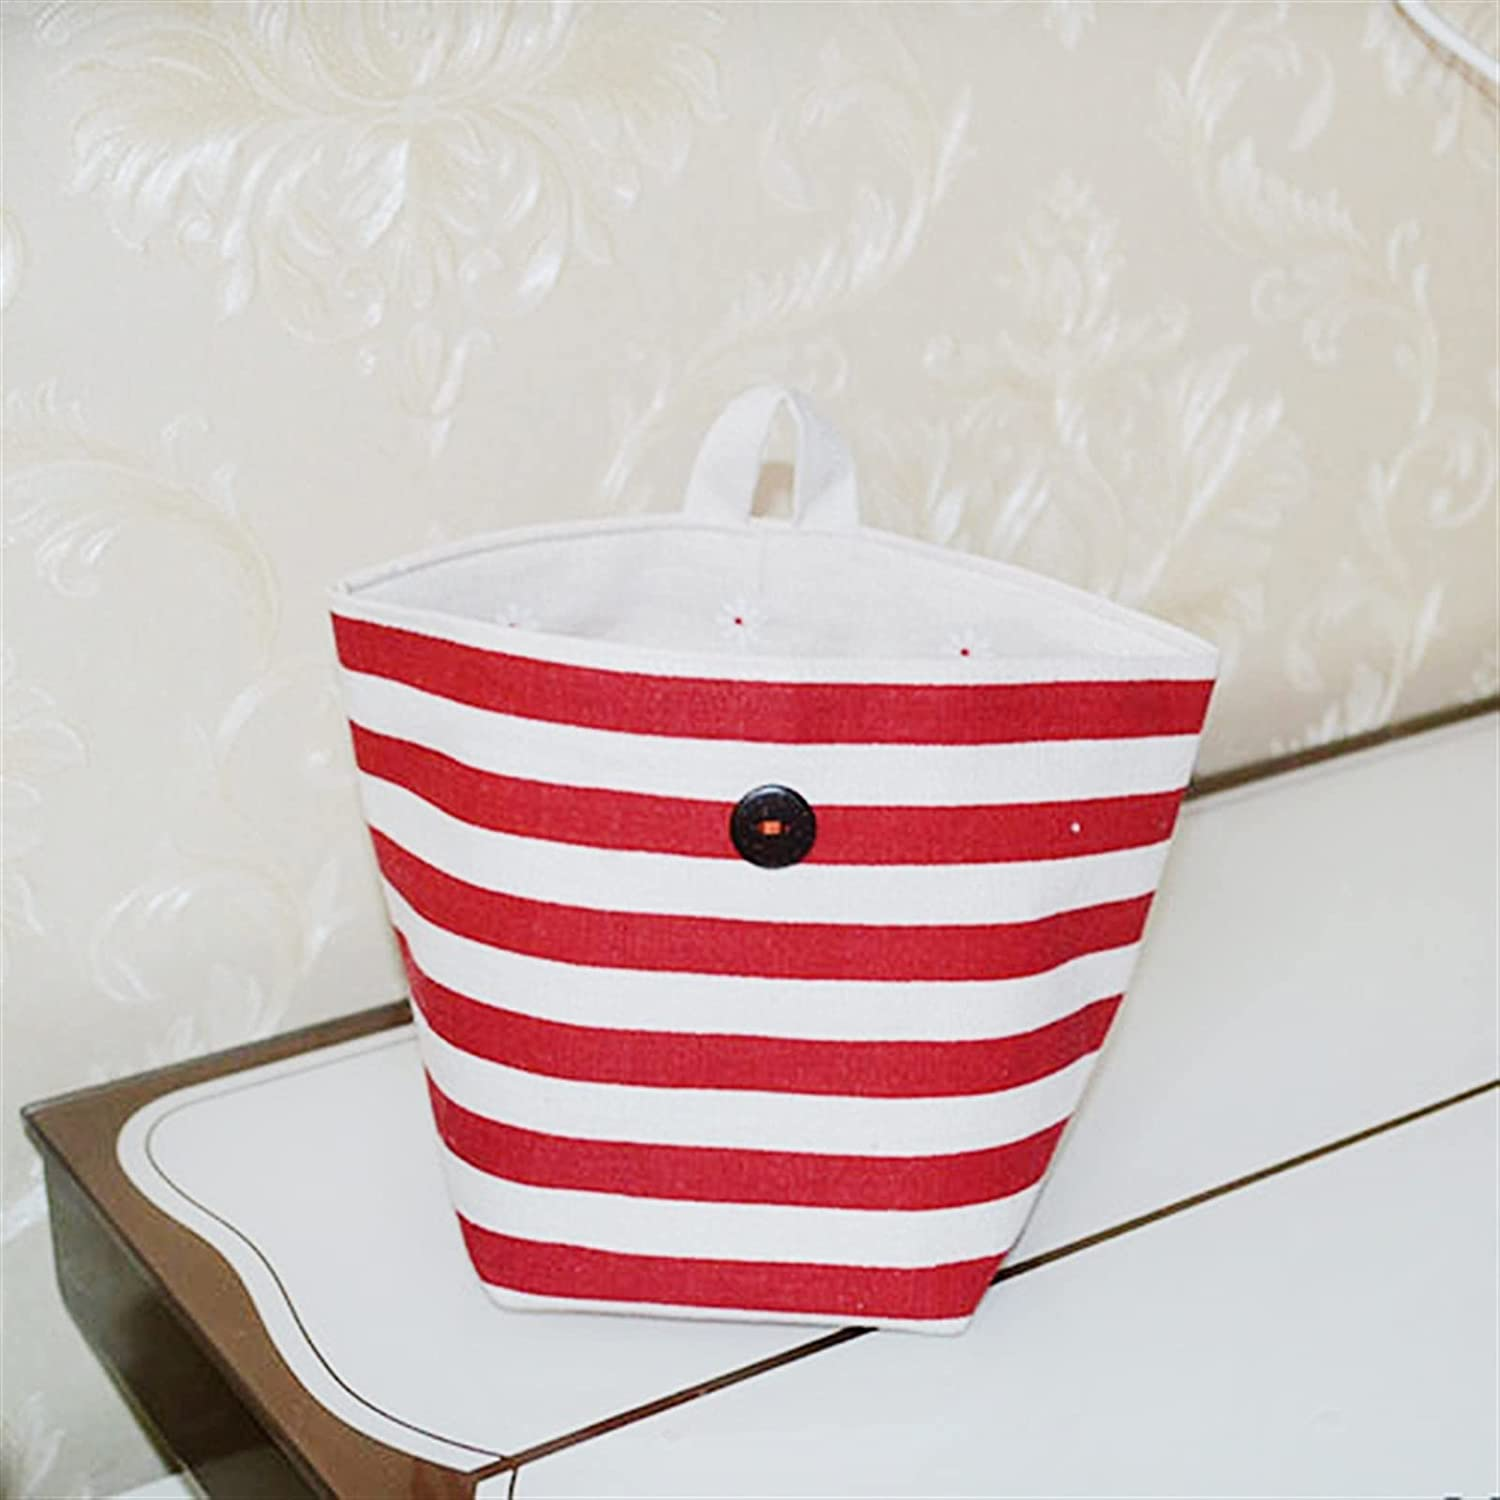 UIOP Wall It is very popular Hanging Storage Bags New arrival Pockets Small Organizer Home for